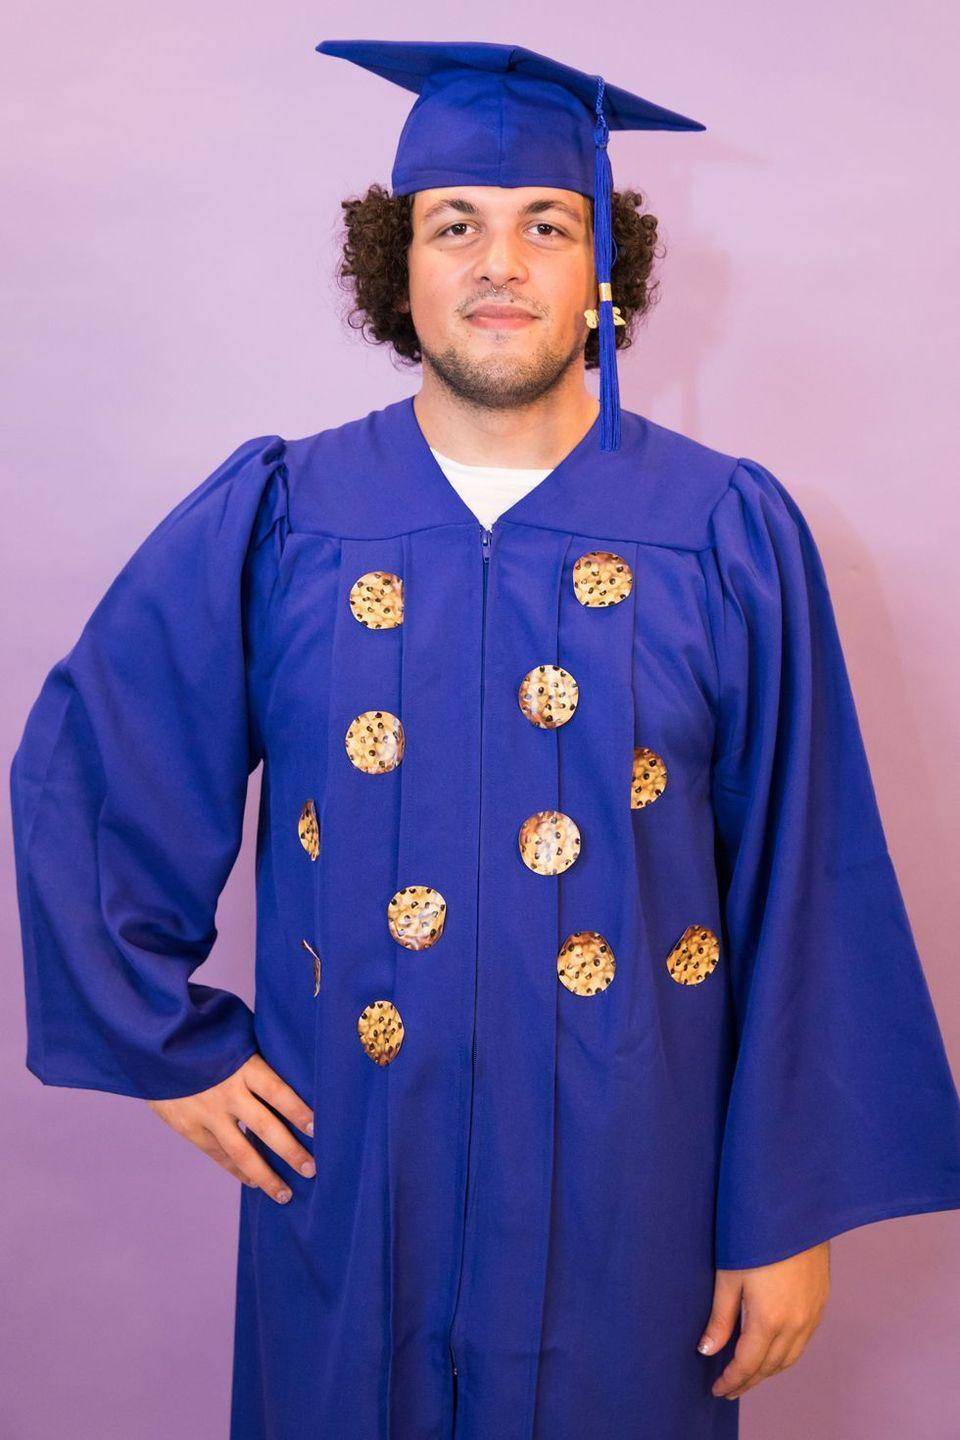 """<p>Got an old cap and gown hanging in your closet that you never thought you'd wear again? Think again! Your old regalia is the perfect jumping off point for this brainy costume. To make it, just tape cookie cut-outs to that old cap and gown for a hilariously sweet costume.</p><p><a class=""""link rapid-noclick-resp"""" href=""""https://www.amazon.com/GraduationForYou-Matte-Graduation-Tassel-45inFF/dp/B01M03XKSY/?tag=syn-yahoo-20&ascsubtag=%5Bartid%7C10070.g.490%5Bsrc%7Cyahoo-us"""" rel=""""nofollow noopener"""" target=""""_blank"""" data-ylk=""""slk:SHOP GRADUATION CAPS AND GOWNS"""">SHOP GRADUATION CAPS AND GOWNS</a> </p><p>__________________________________________________________</p><p>Want to make your holidays shine? You're in luck! <a href=""""https://subscribe.hearstmags.com/subscribe/womansday/253396?source=wdy_edit_article"""" rel=""""nofollow noopener"""" target=""""_blank"""" data-ylk=""""slk:Subscribe to Woman's Day"""" class=""""link rapid-noclick-resp"""">Subscribe to Woman's Day</a> today and get <strong>73% off your first 12 issues</strong>. And while you're at it, <a href=""""https://subscribe.hearstmags.com/circulation/shared/email/newsletters/signup/wdy-su01.html"""" rel=""""nofollow noopener"""" target=""""_blank"""" data-ylk=""""slk:sign up for our FREE newsletter"""" class=""""link rapid-noclick-resp"""">sign up for our FREE newsletter</a> for even more of the Woman's Day content you want.</p>"""